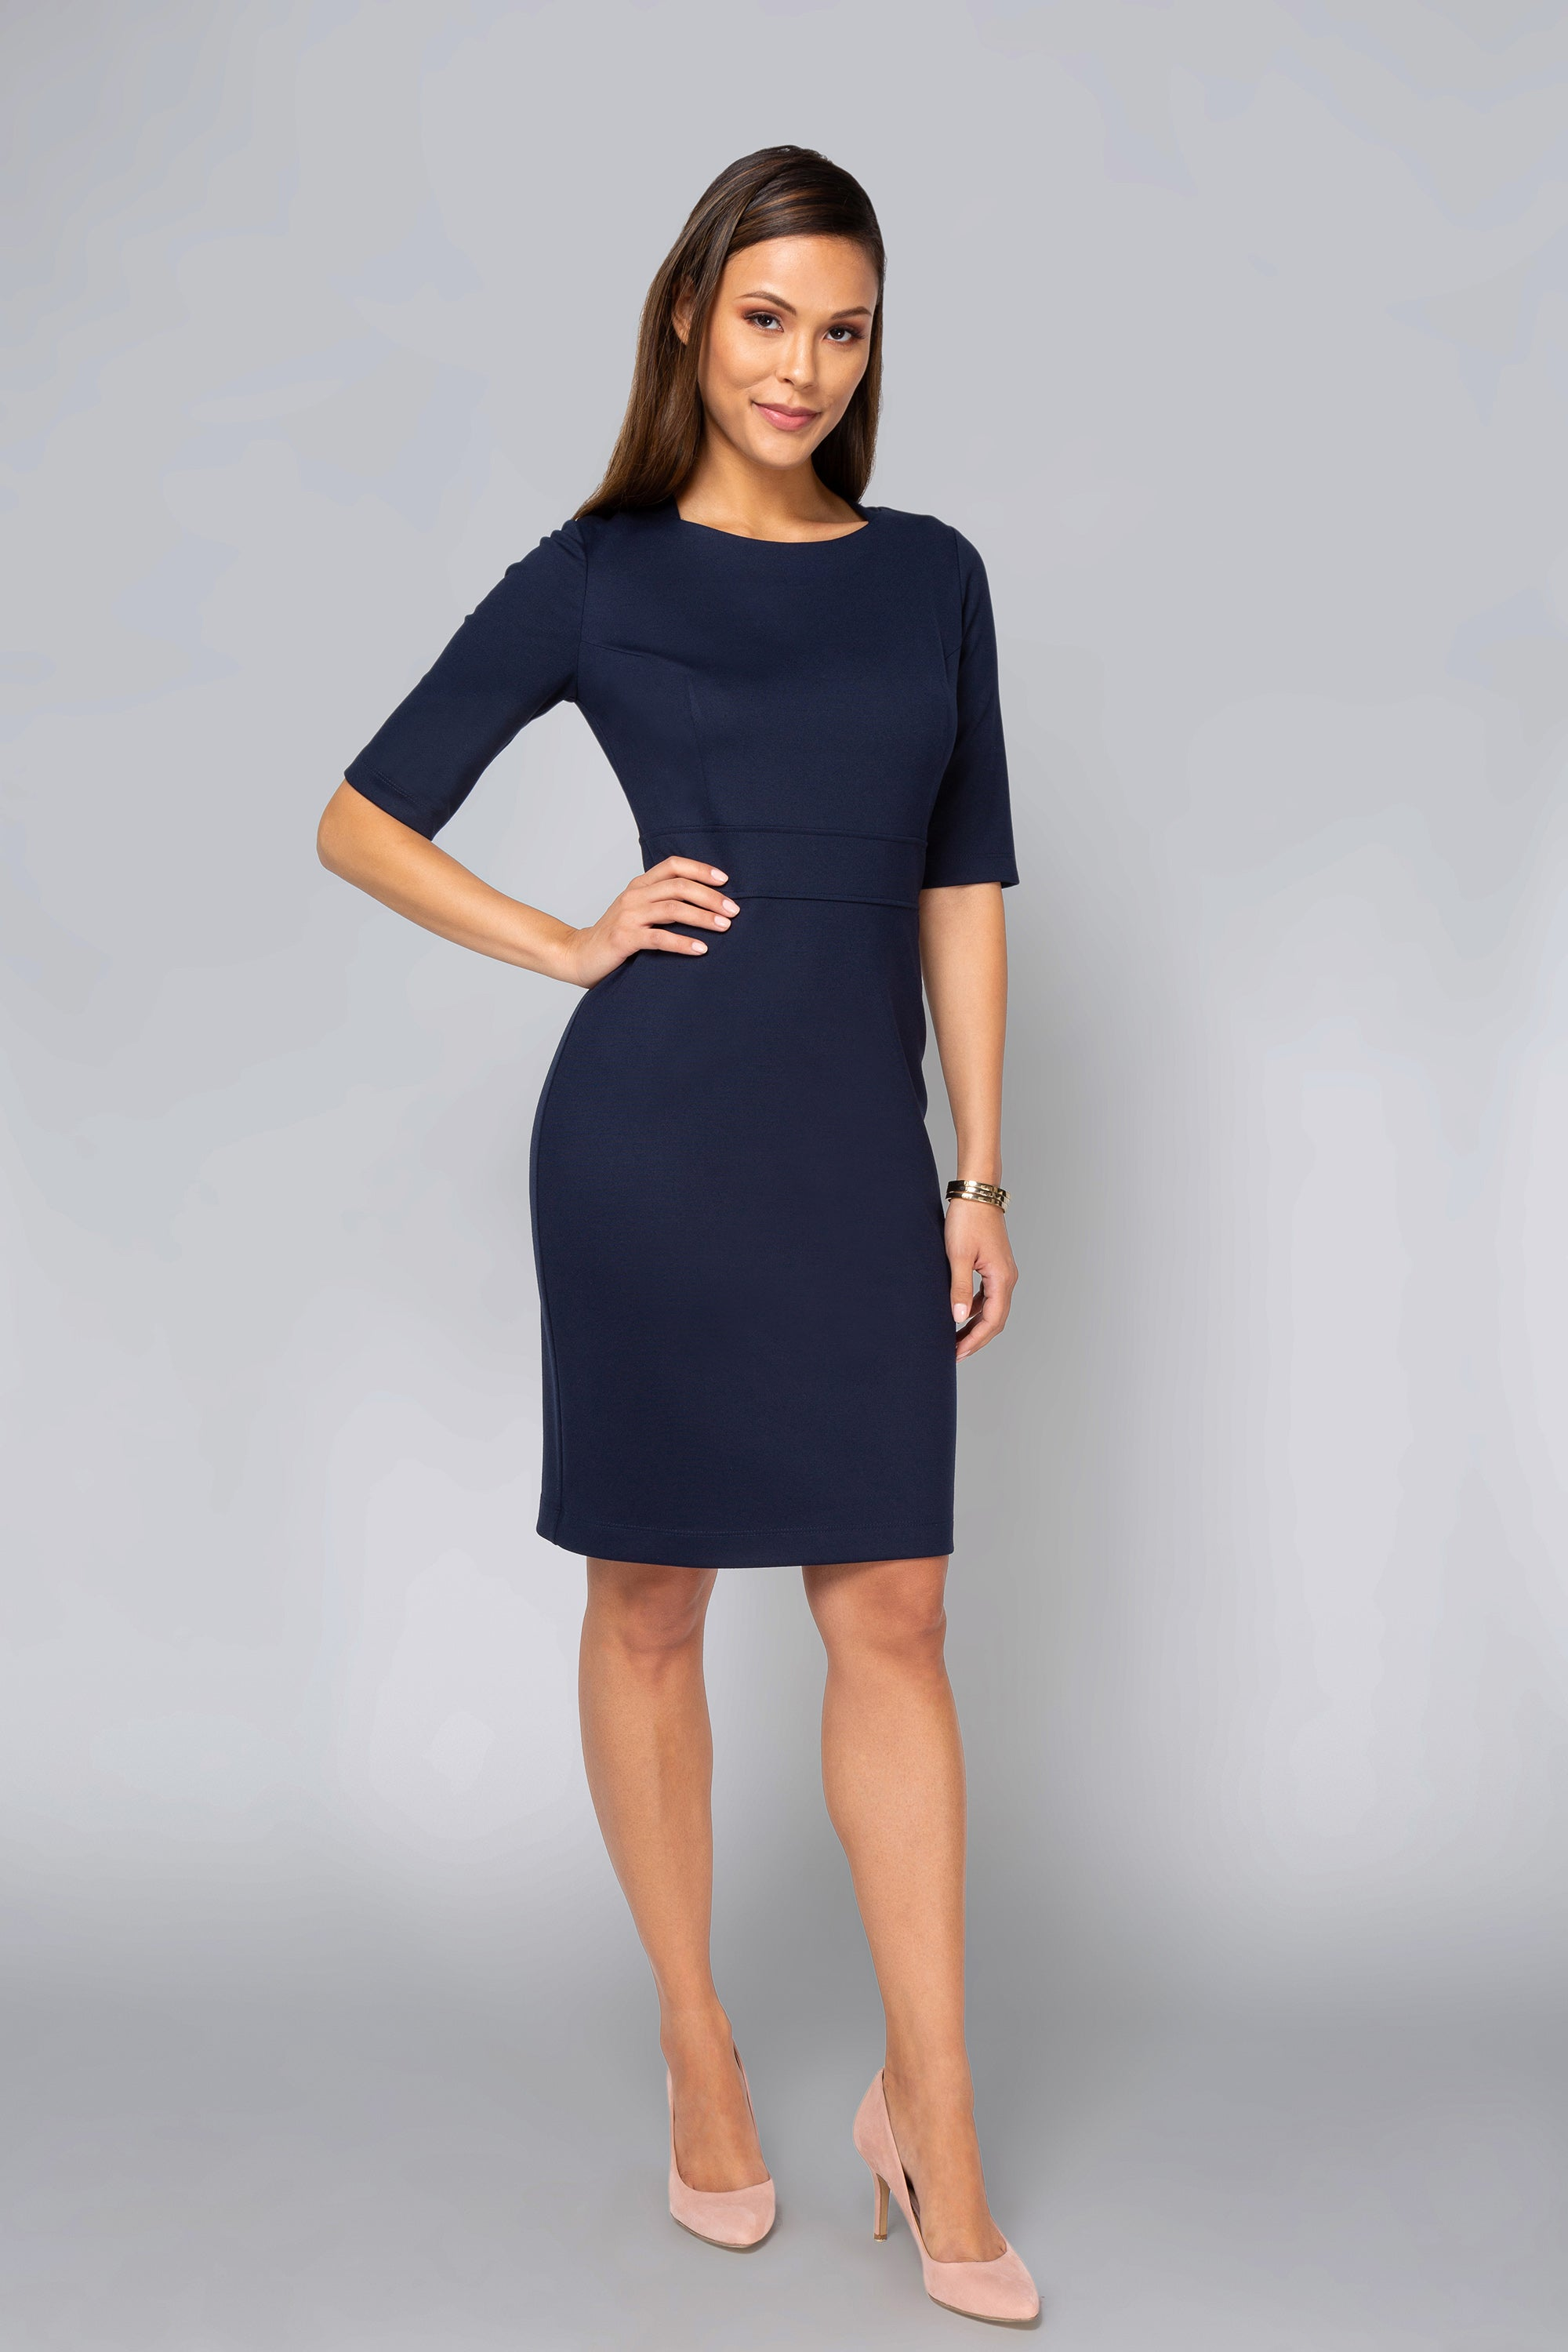 Karyn Dress - Navy